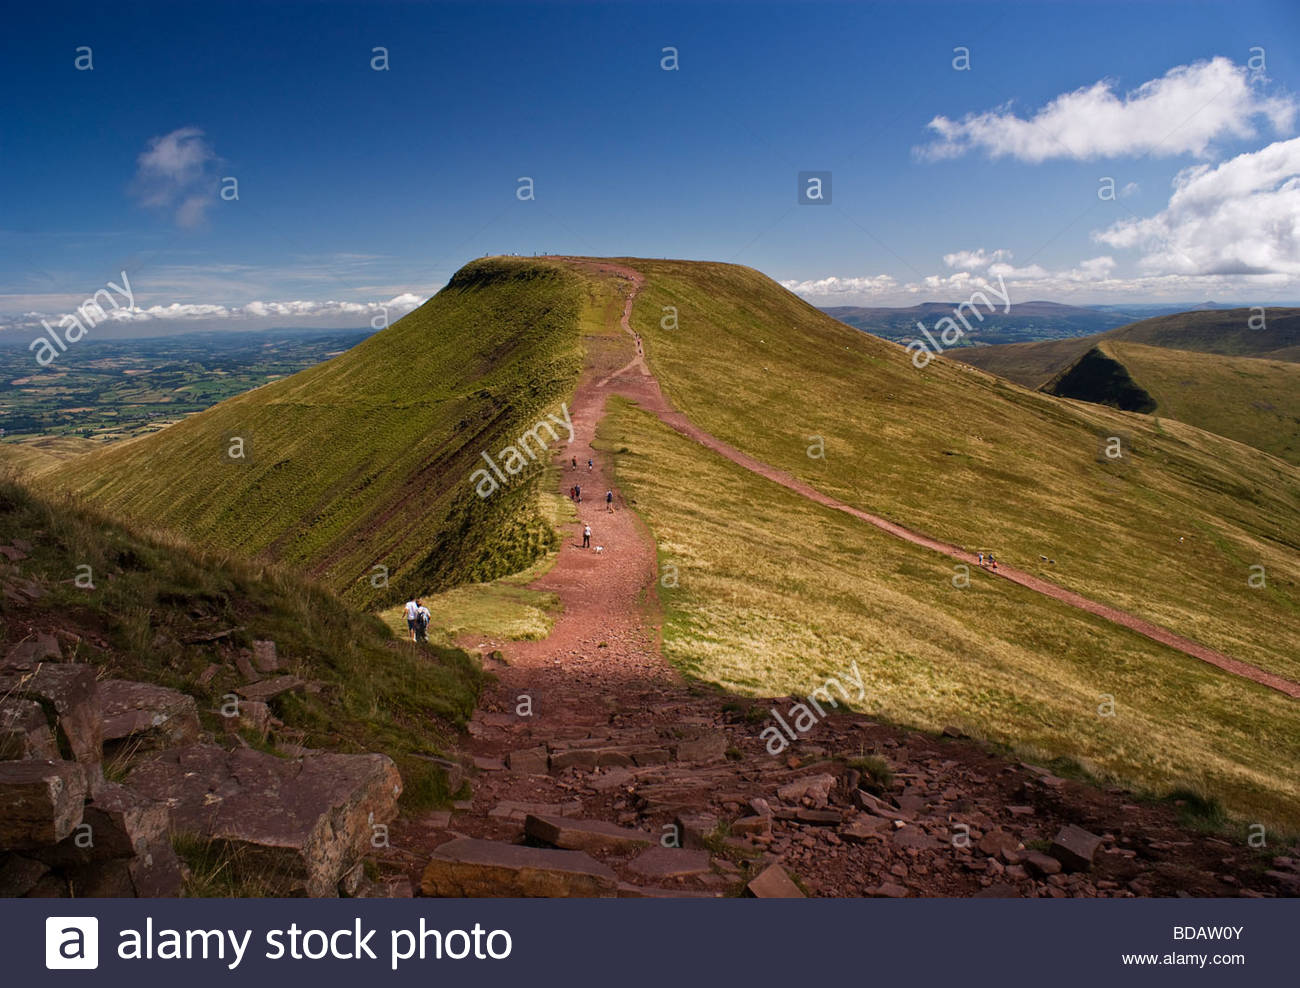 Pen-y-Fan Brecon Beacons National Park, Pen Y Fan - Brecon Beacons National Park - South Wales Stock Photo ...